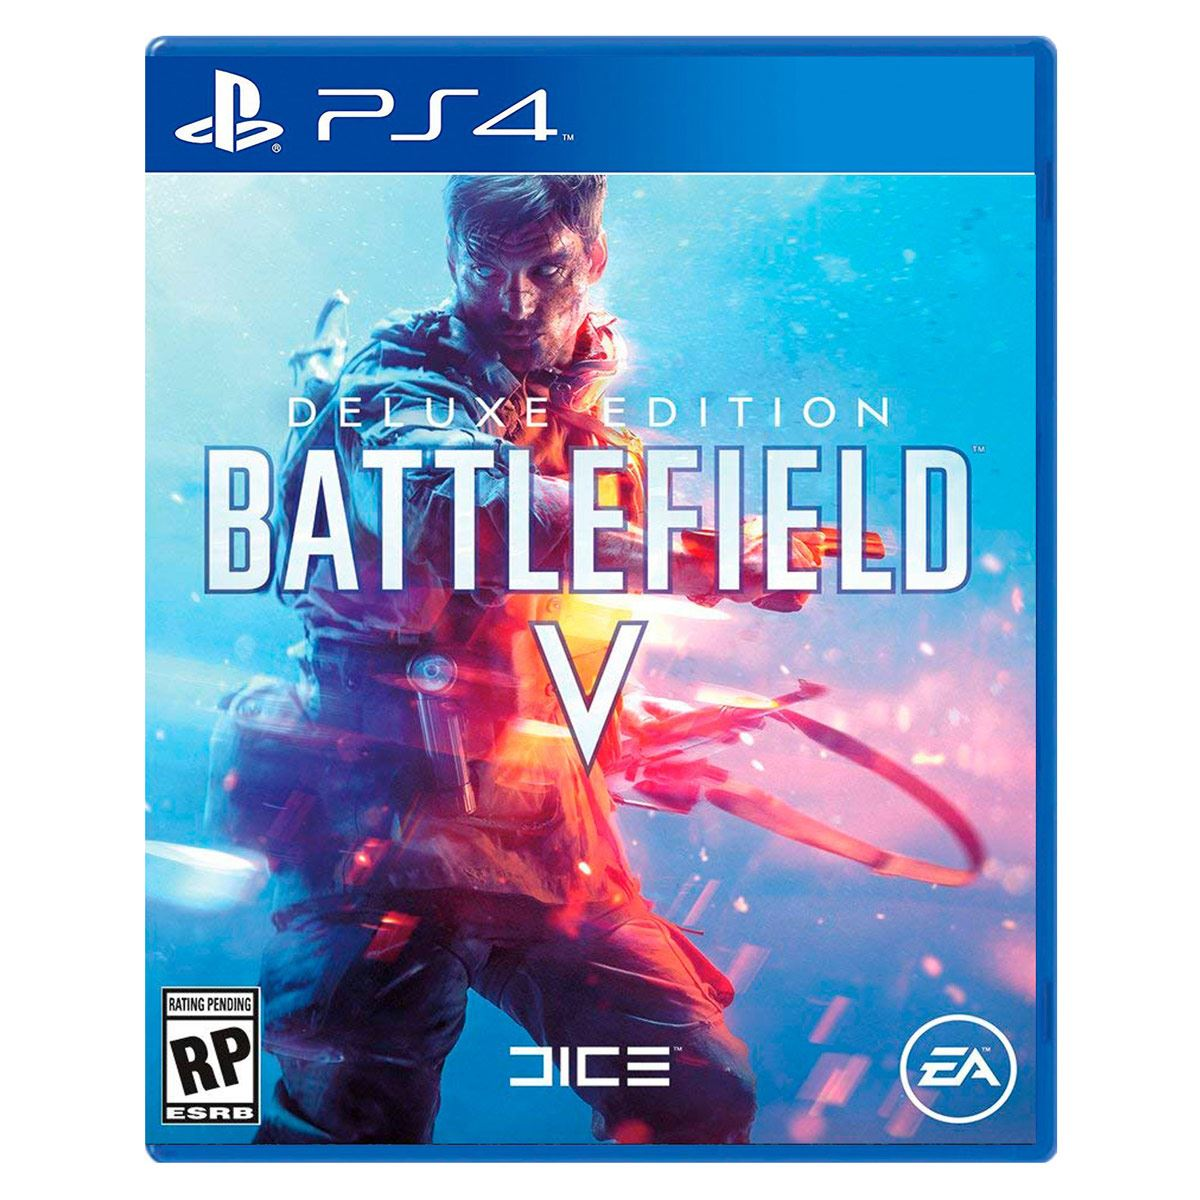 PS4 Battlefield V Deluxe Edition